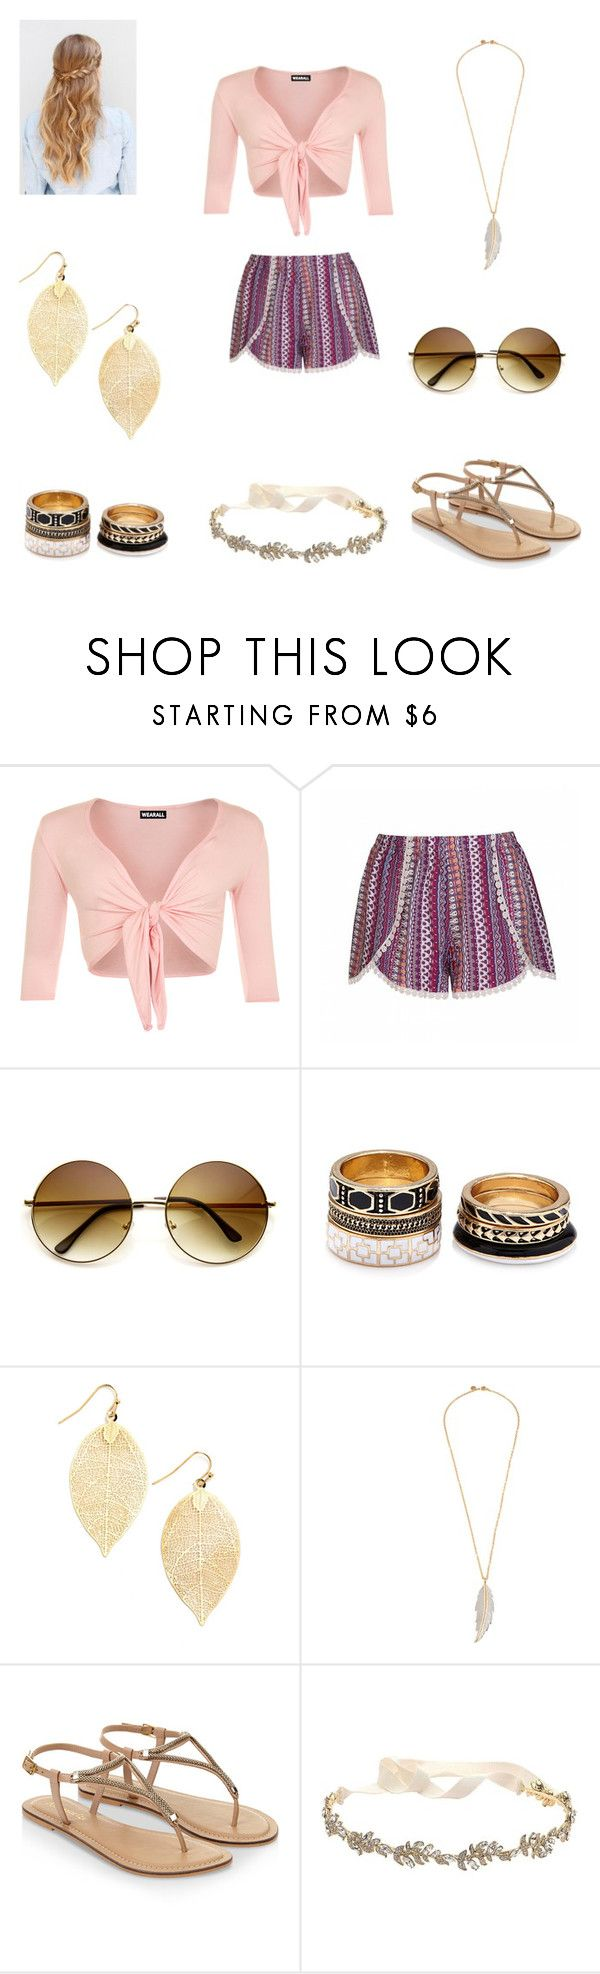 """""""Boho Chic"""" by designingisfun ❤ liked on Polyvore featuring WearAll, Ally Fashion, Forever 21, LeiVanKash, Accessorize and Marchesa"""